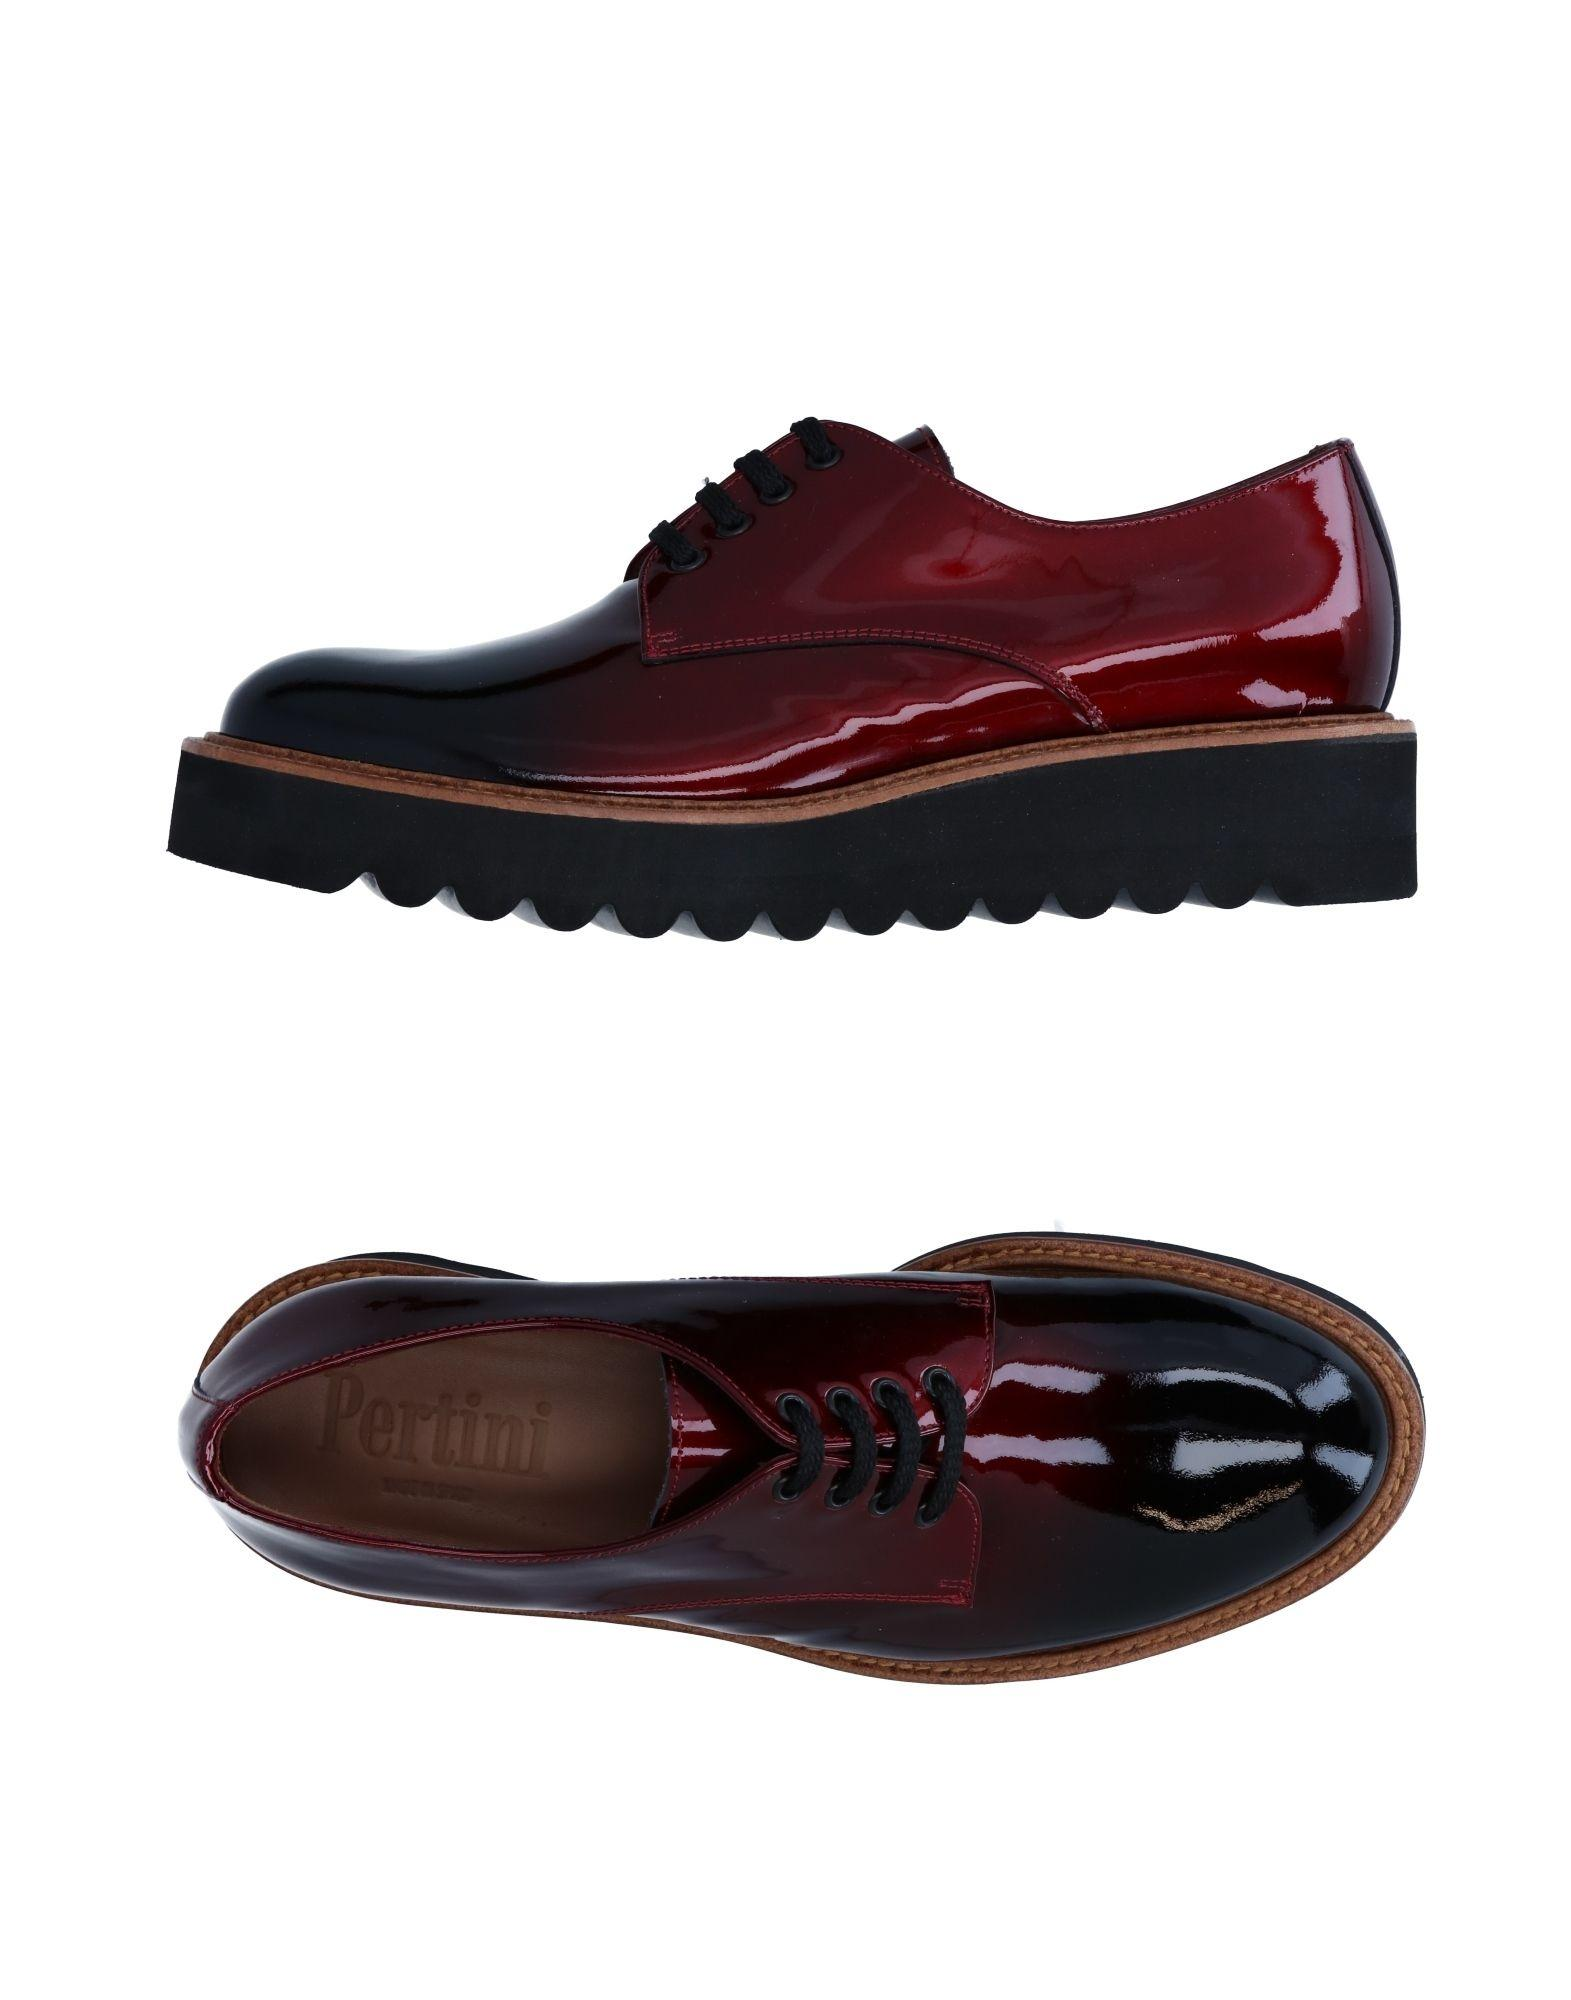 Dunhill Shoes Uk